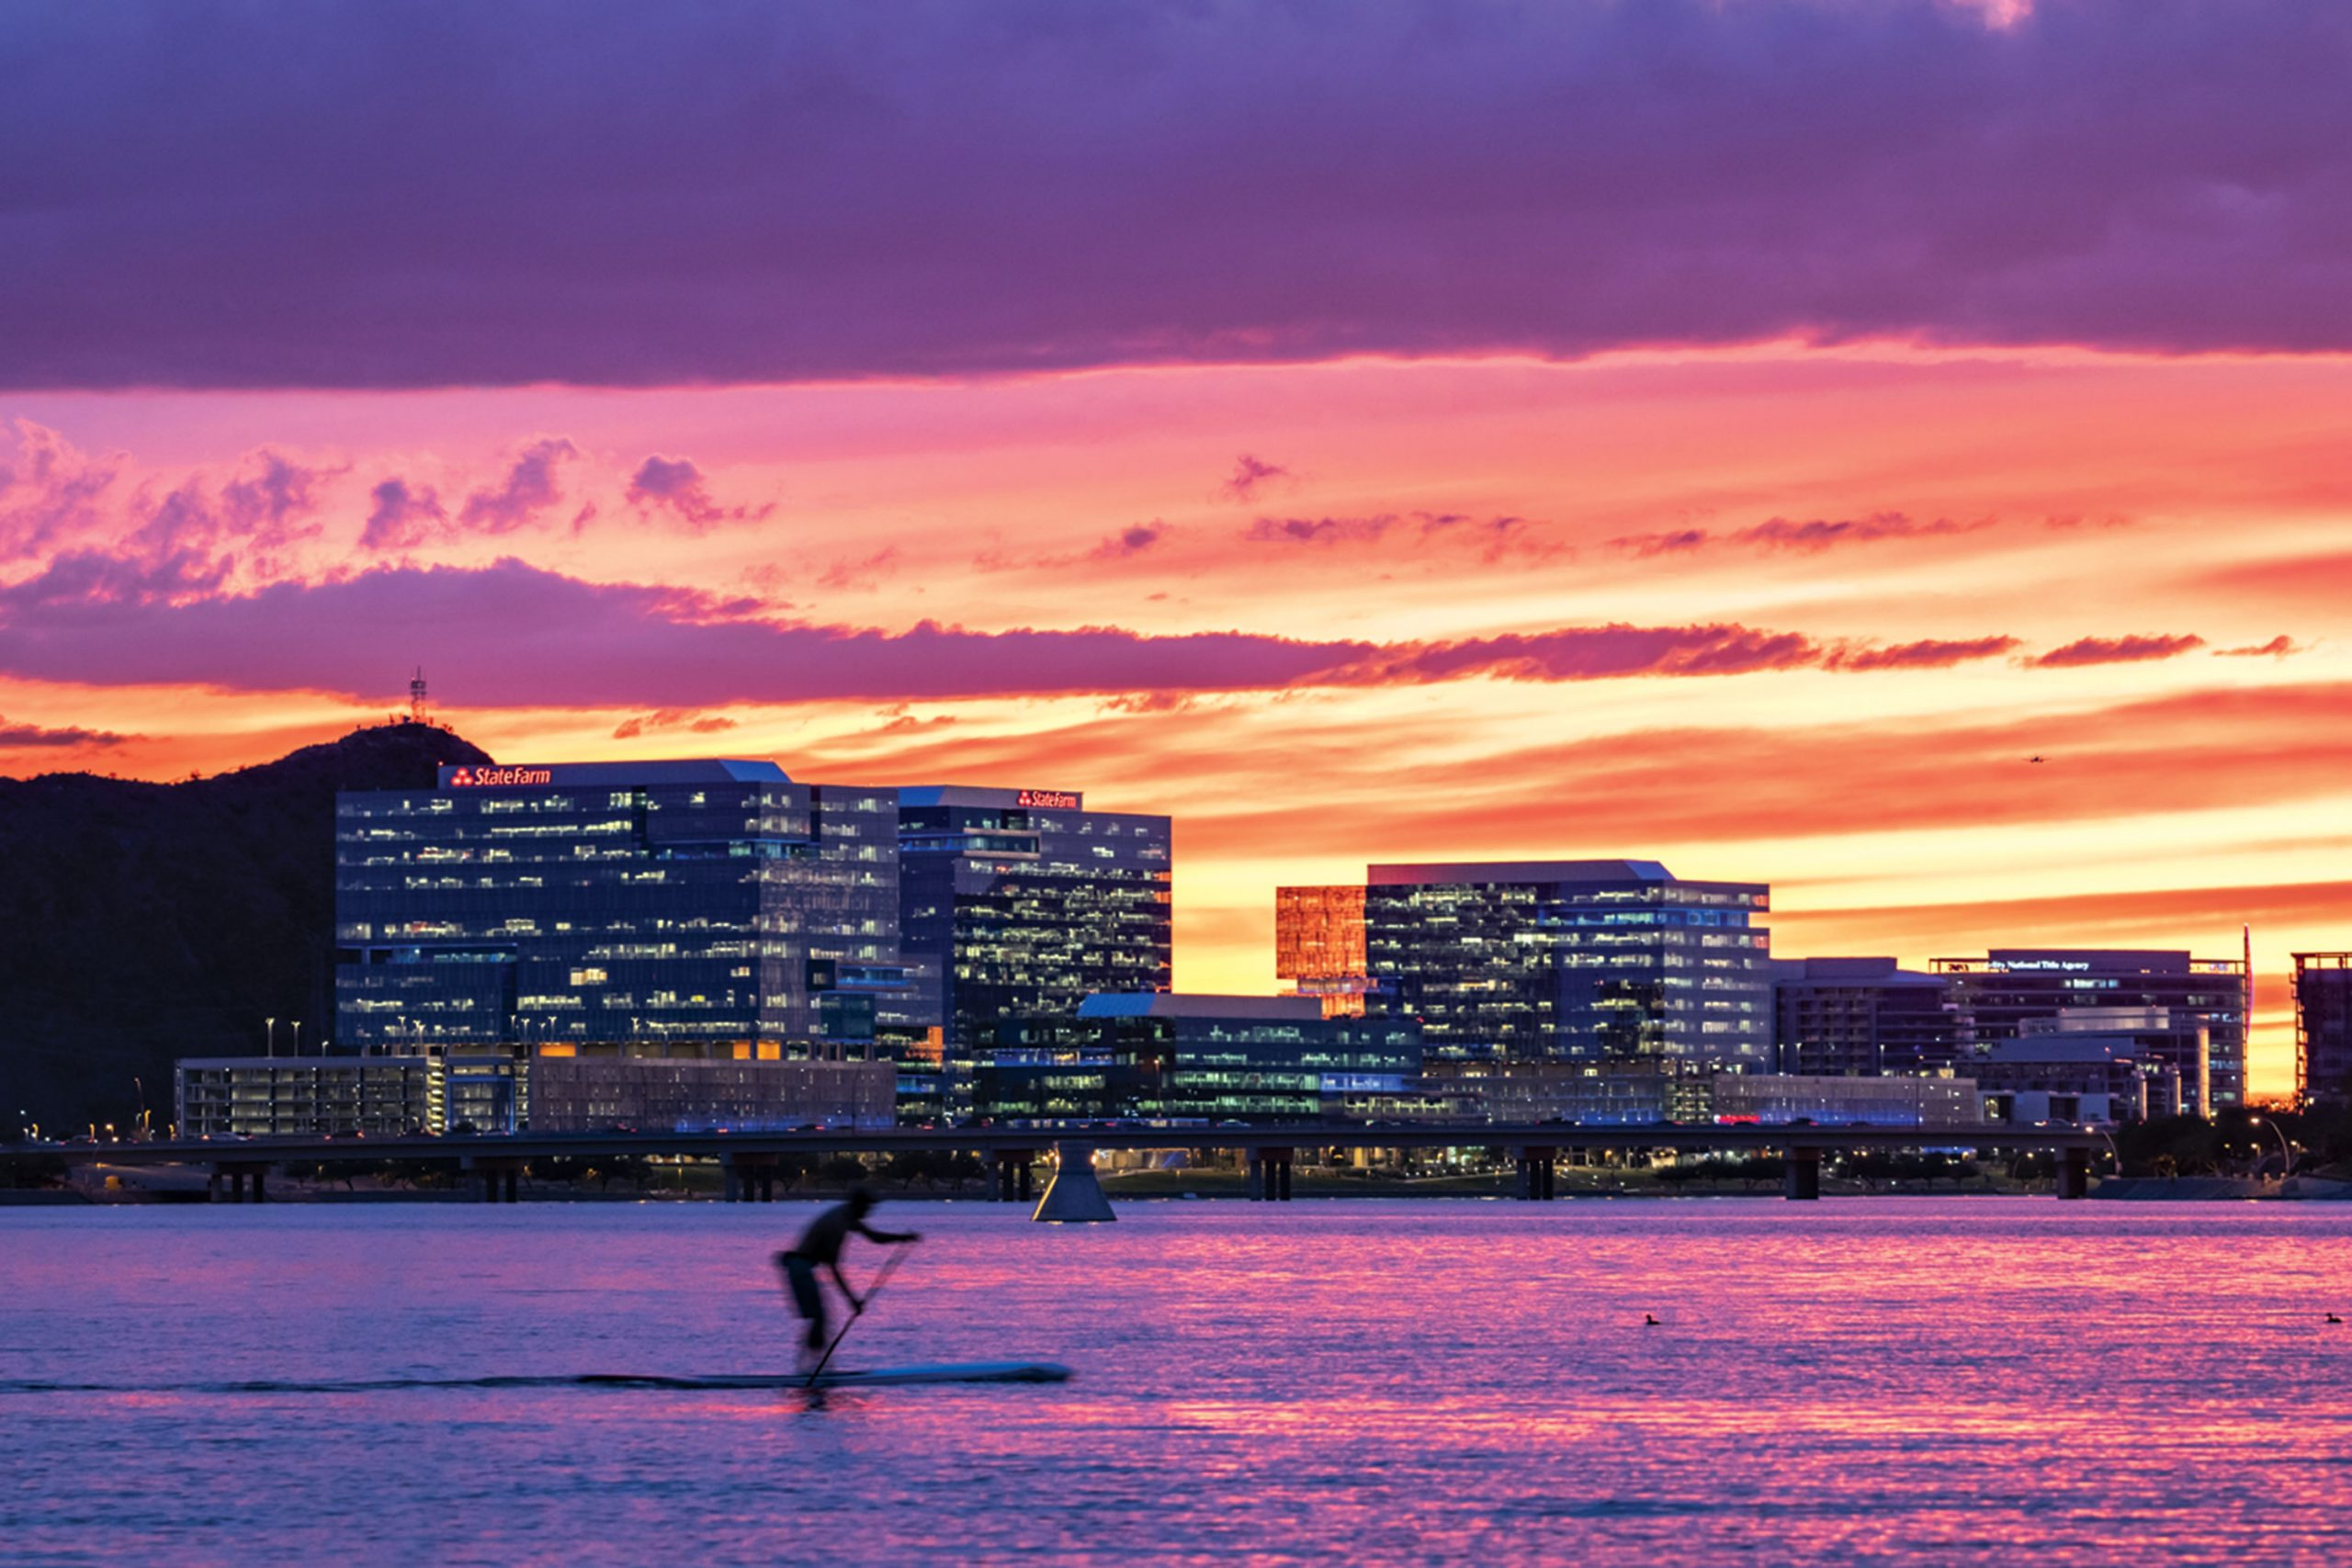 SUP at Tempe Town Lake; Photo Courtesy Adobe Stock Images